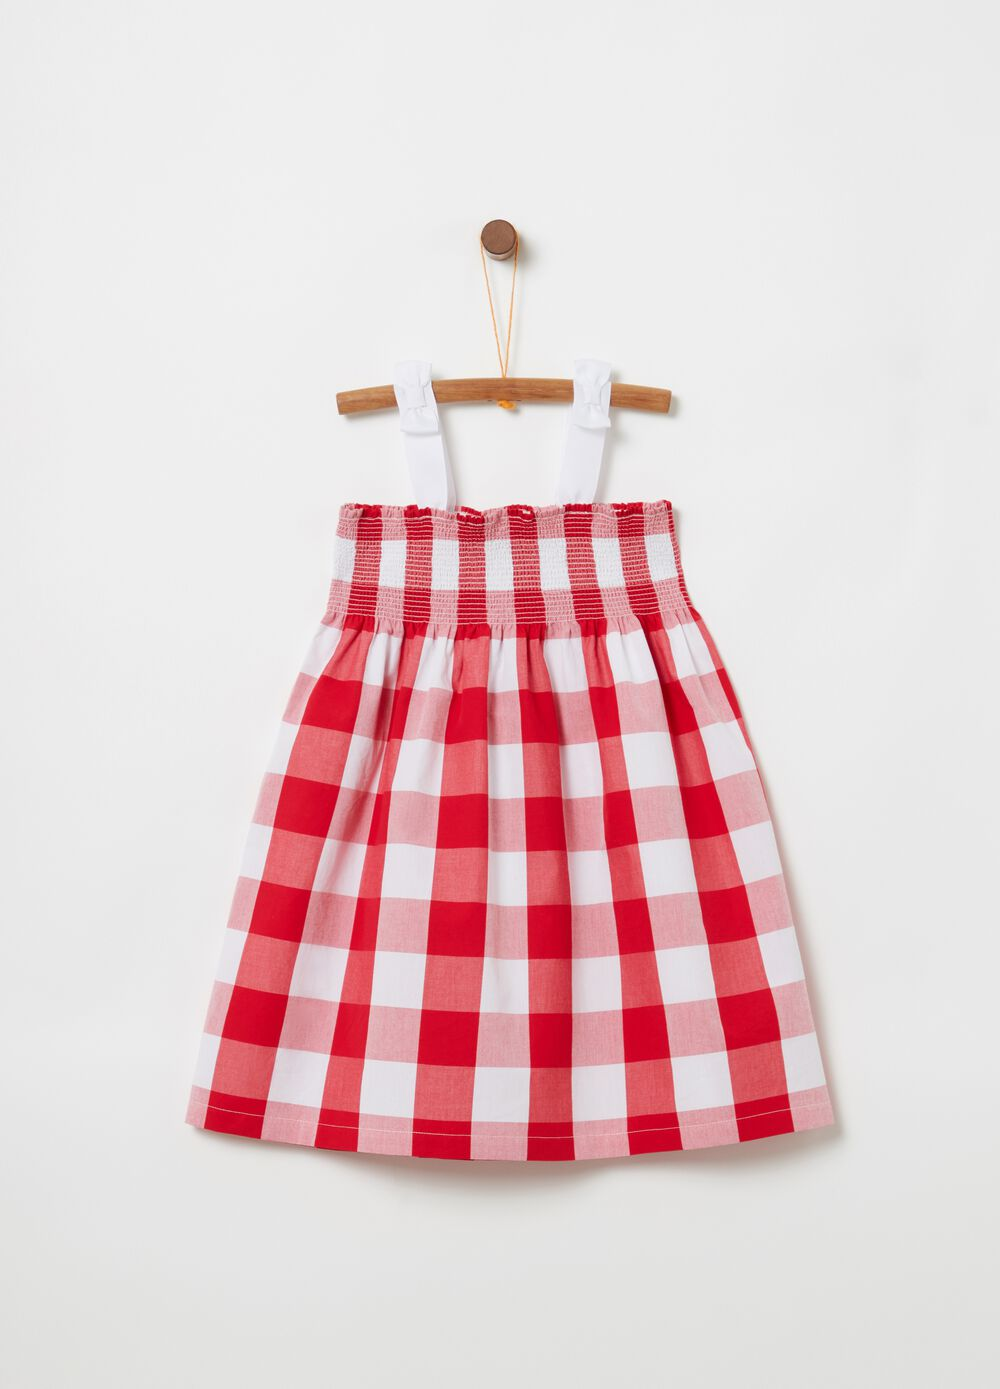 Sleeveless check dress with smock stitching